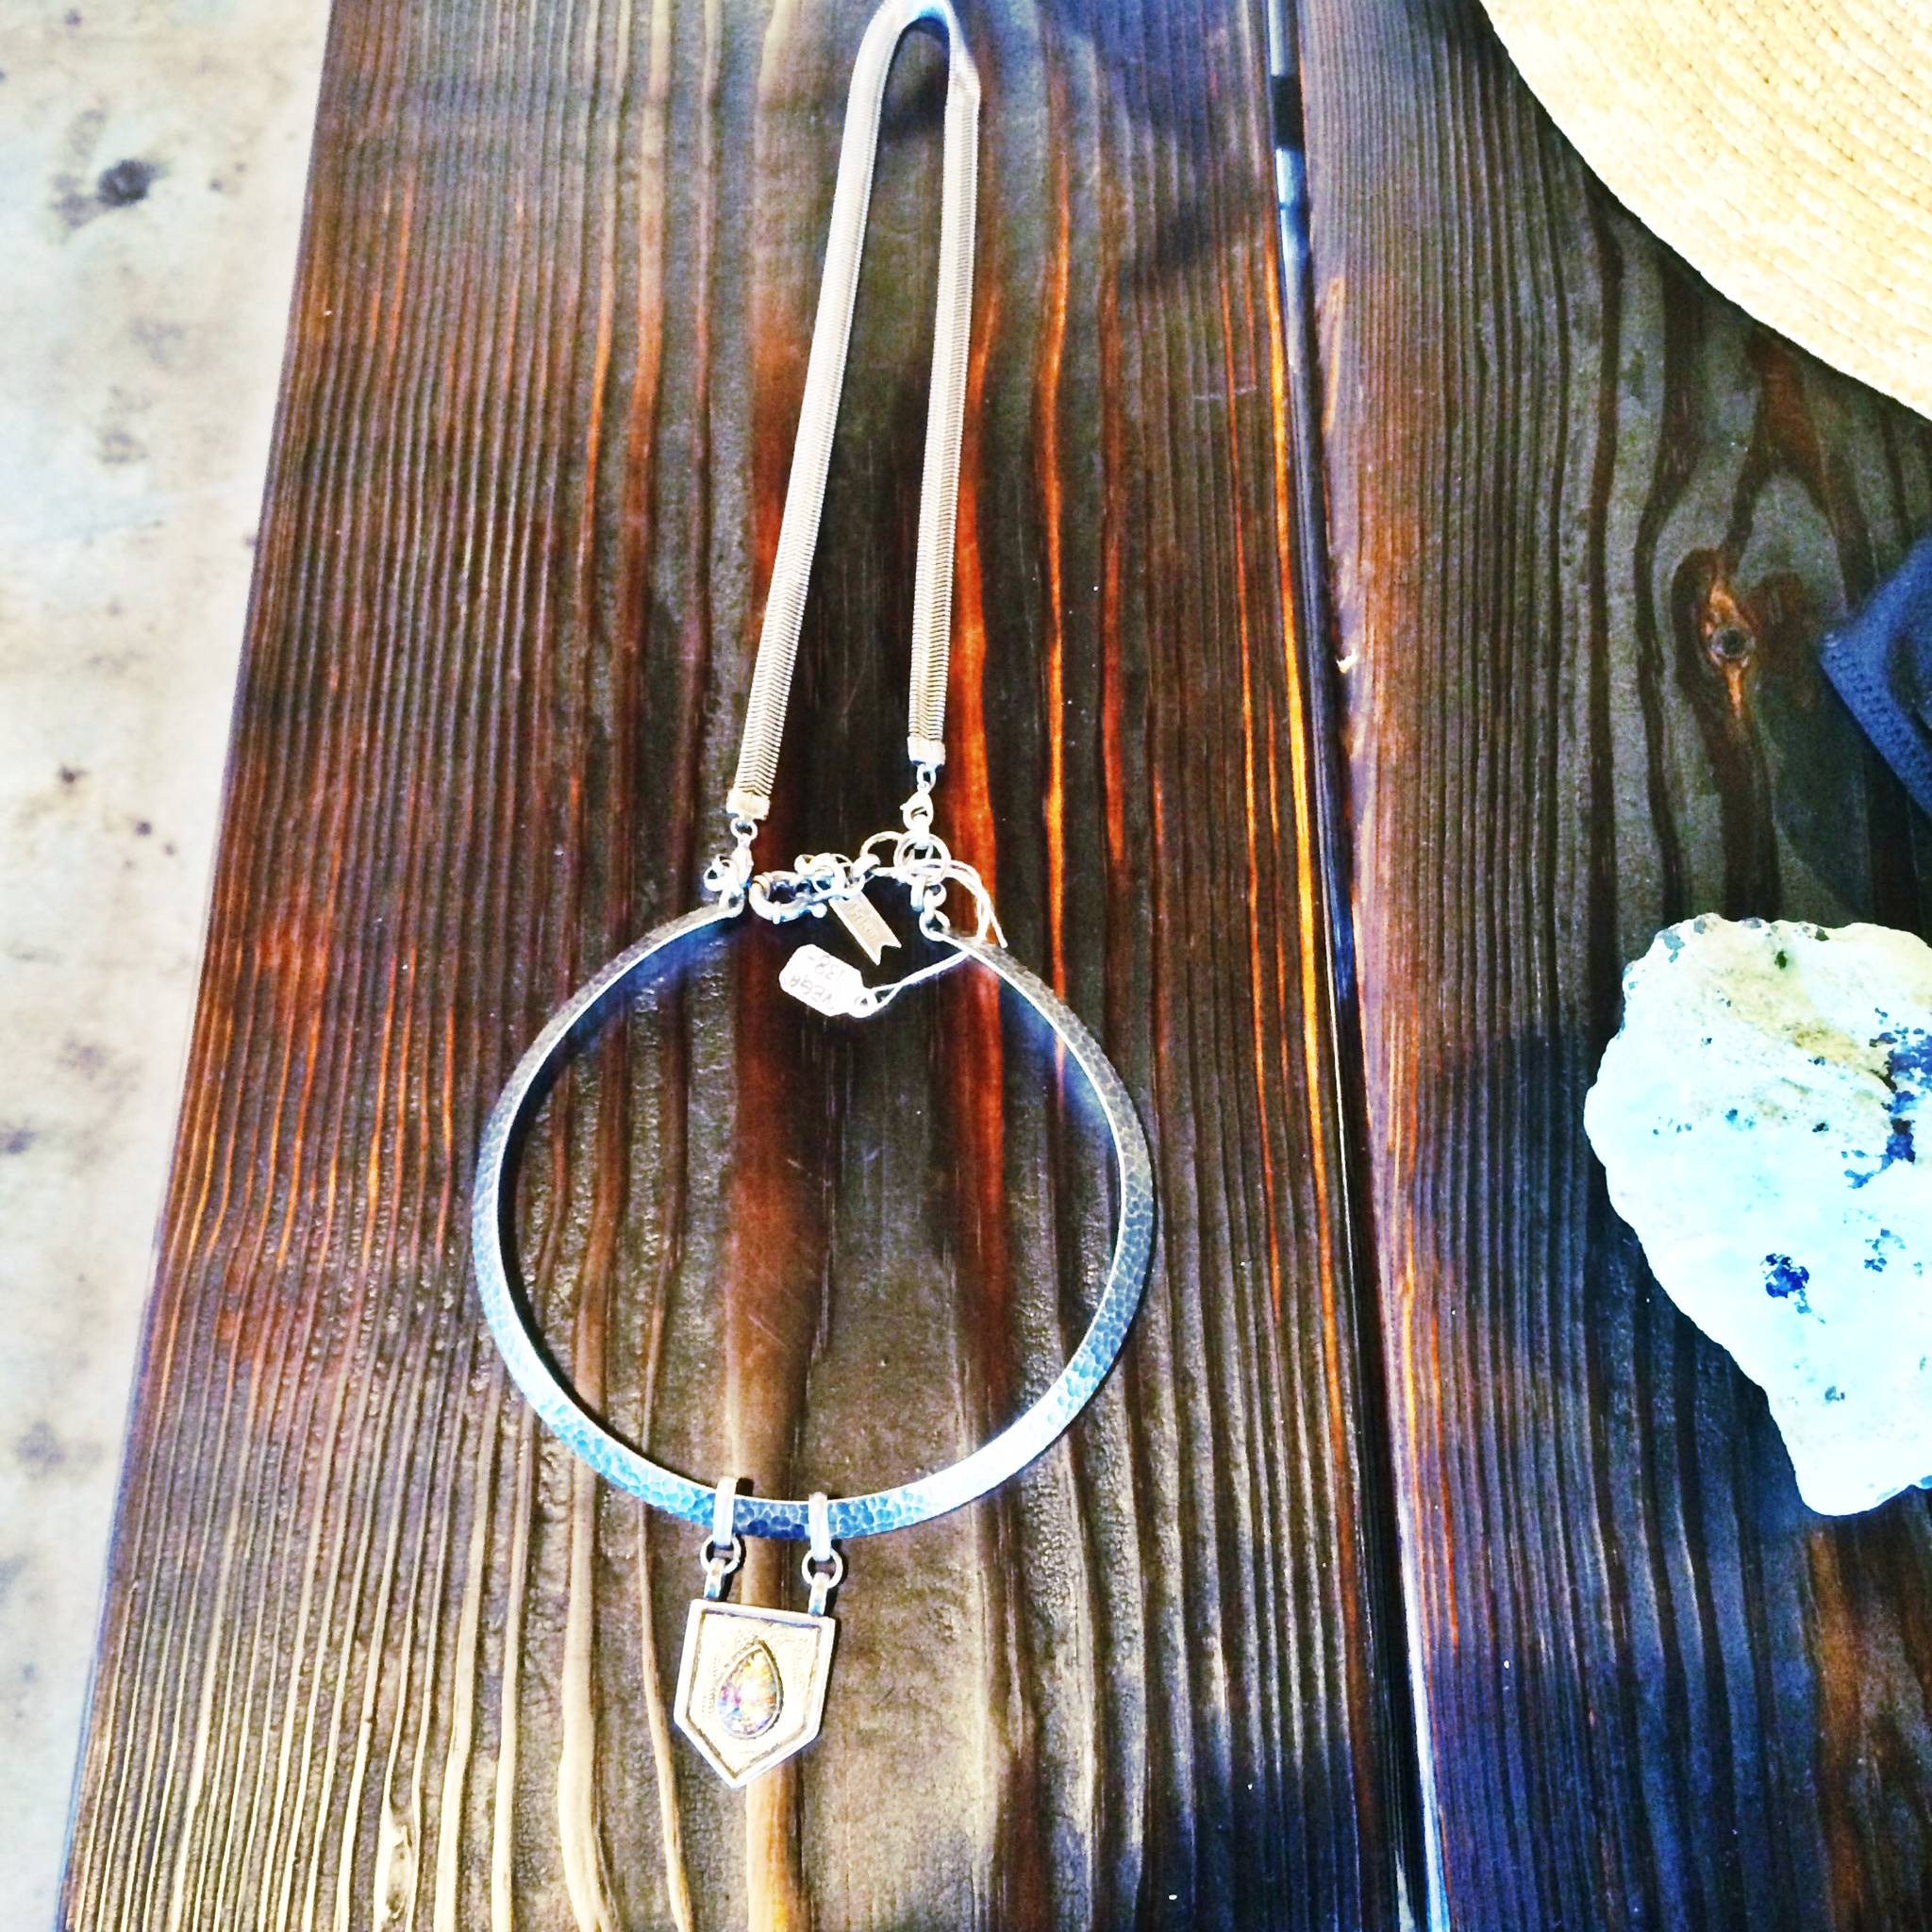 Raquel Greer Gordian exhibits a necklace from Hoiden Supply Company that has an edgy style.